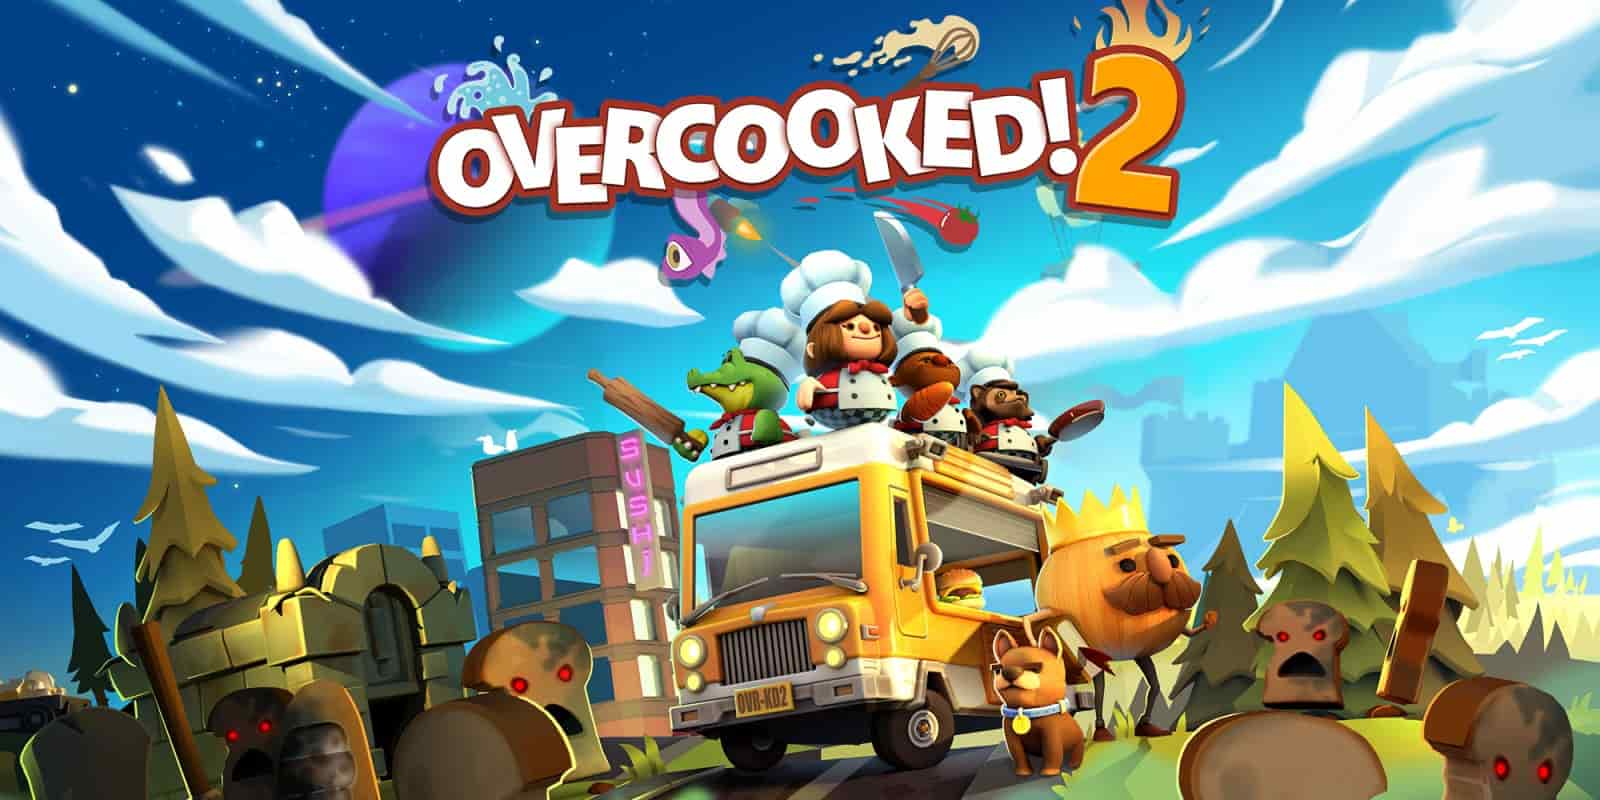 Overcooked 2 chefs on top of their foodtruck